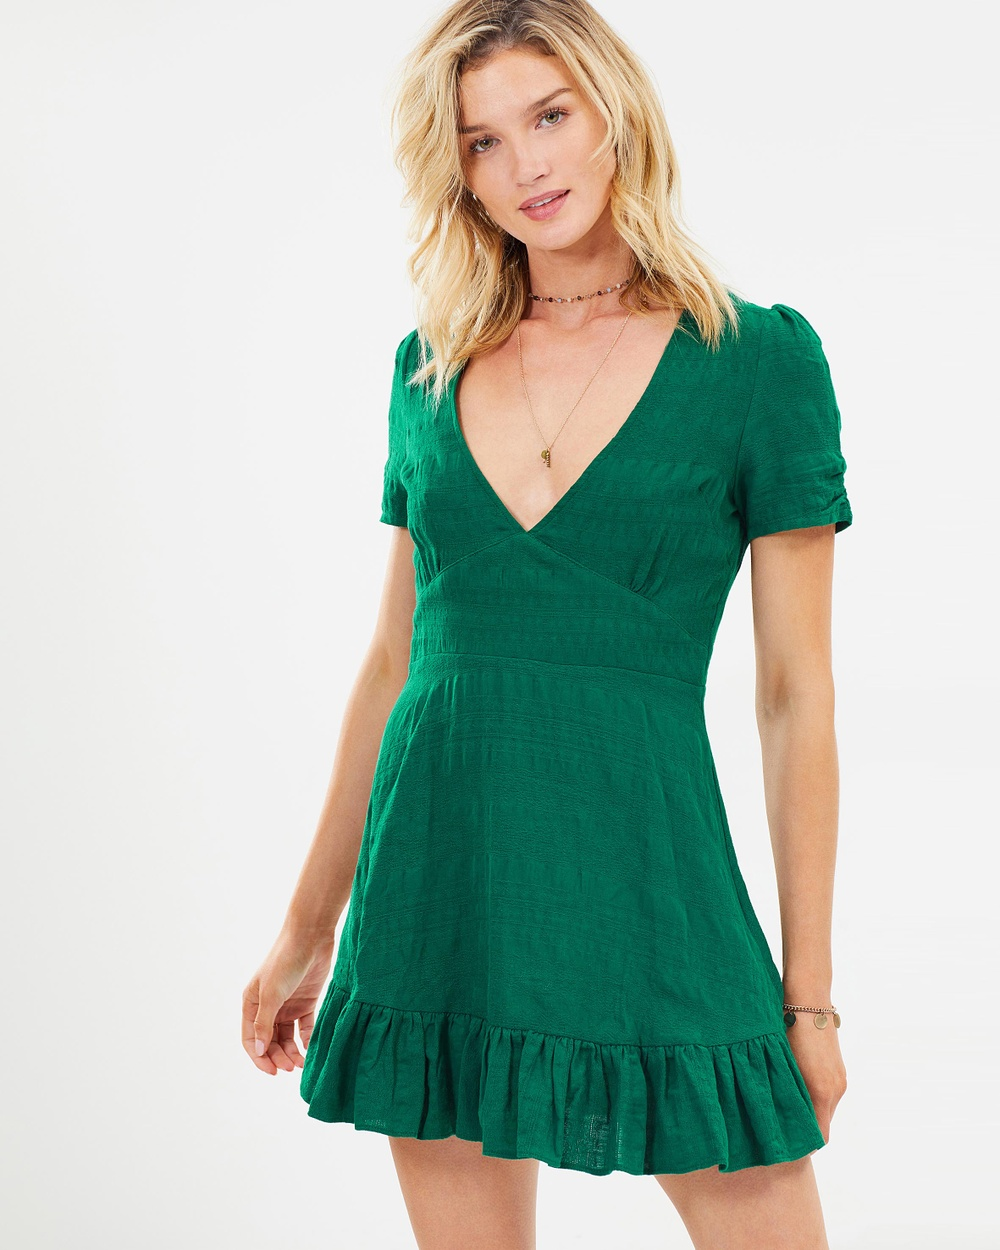 Auguste The Label Stevie Play Dress Dresses Forest Green Stevie Play Dress